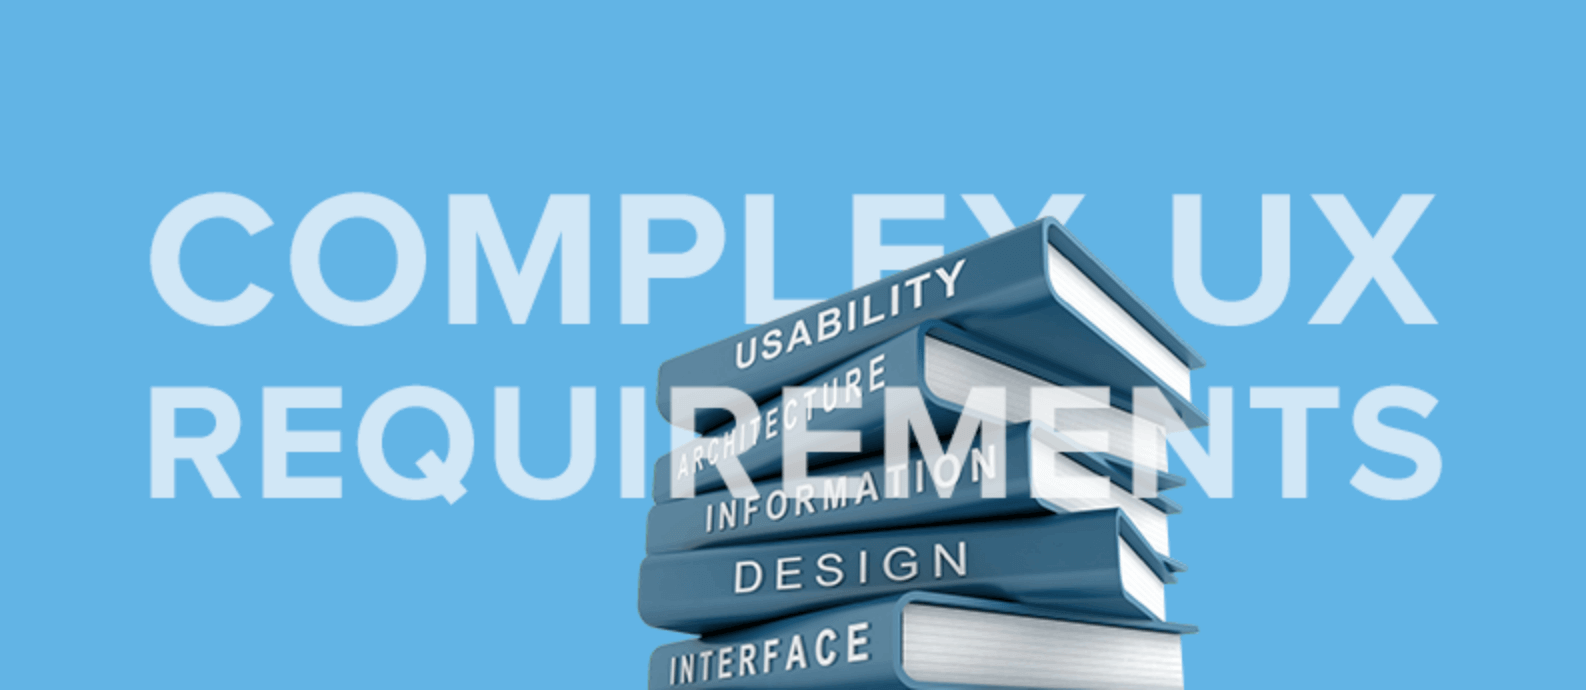 complex ux requirements, usability and design of websites